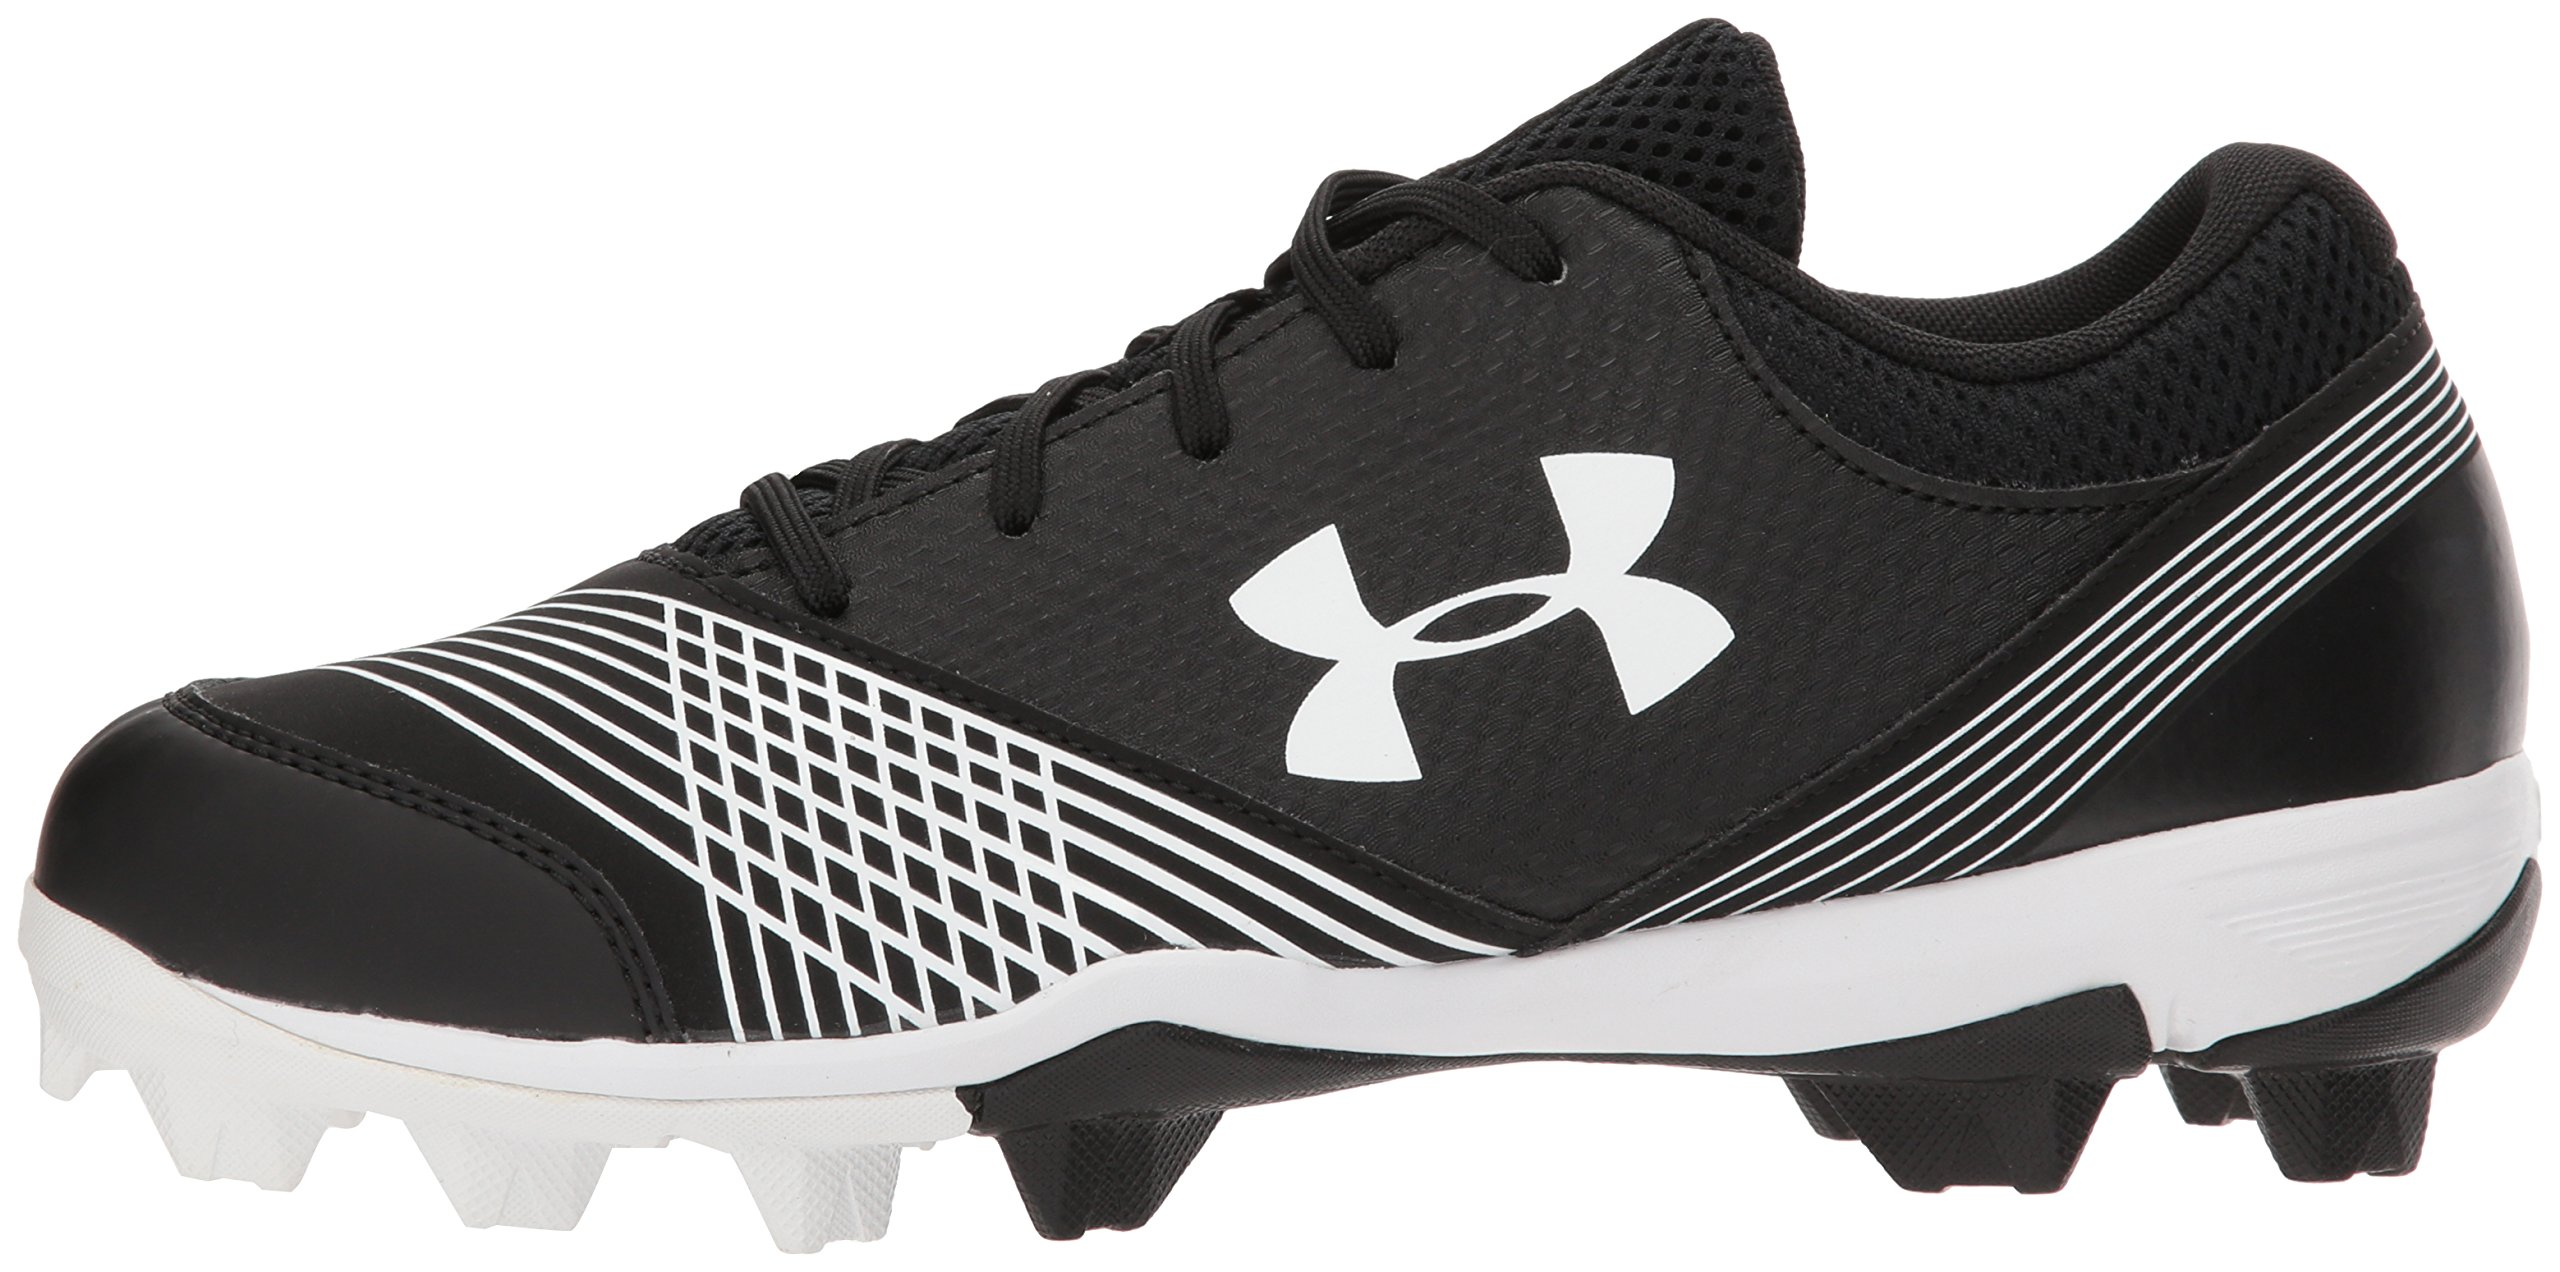 Under Armour Women's Glyde RM Softball Shoe 011/Black, 7 by Under Armour (Image #5)